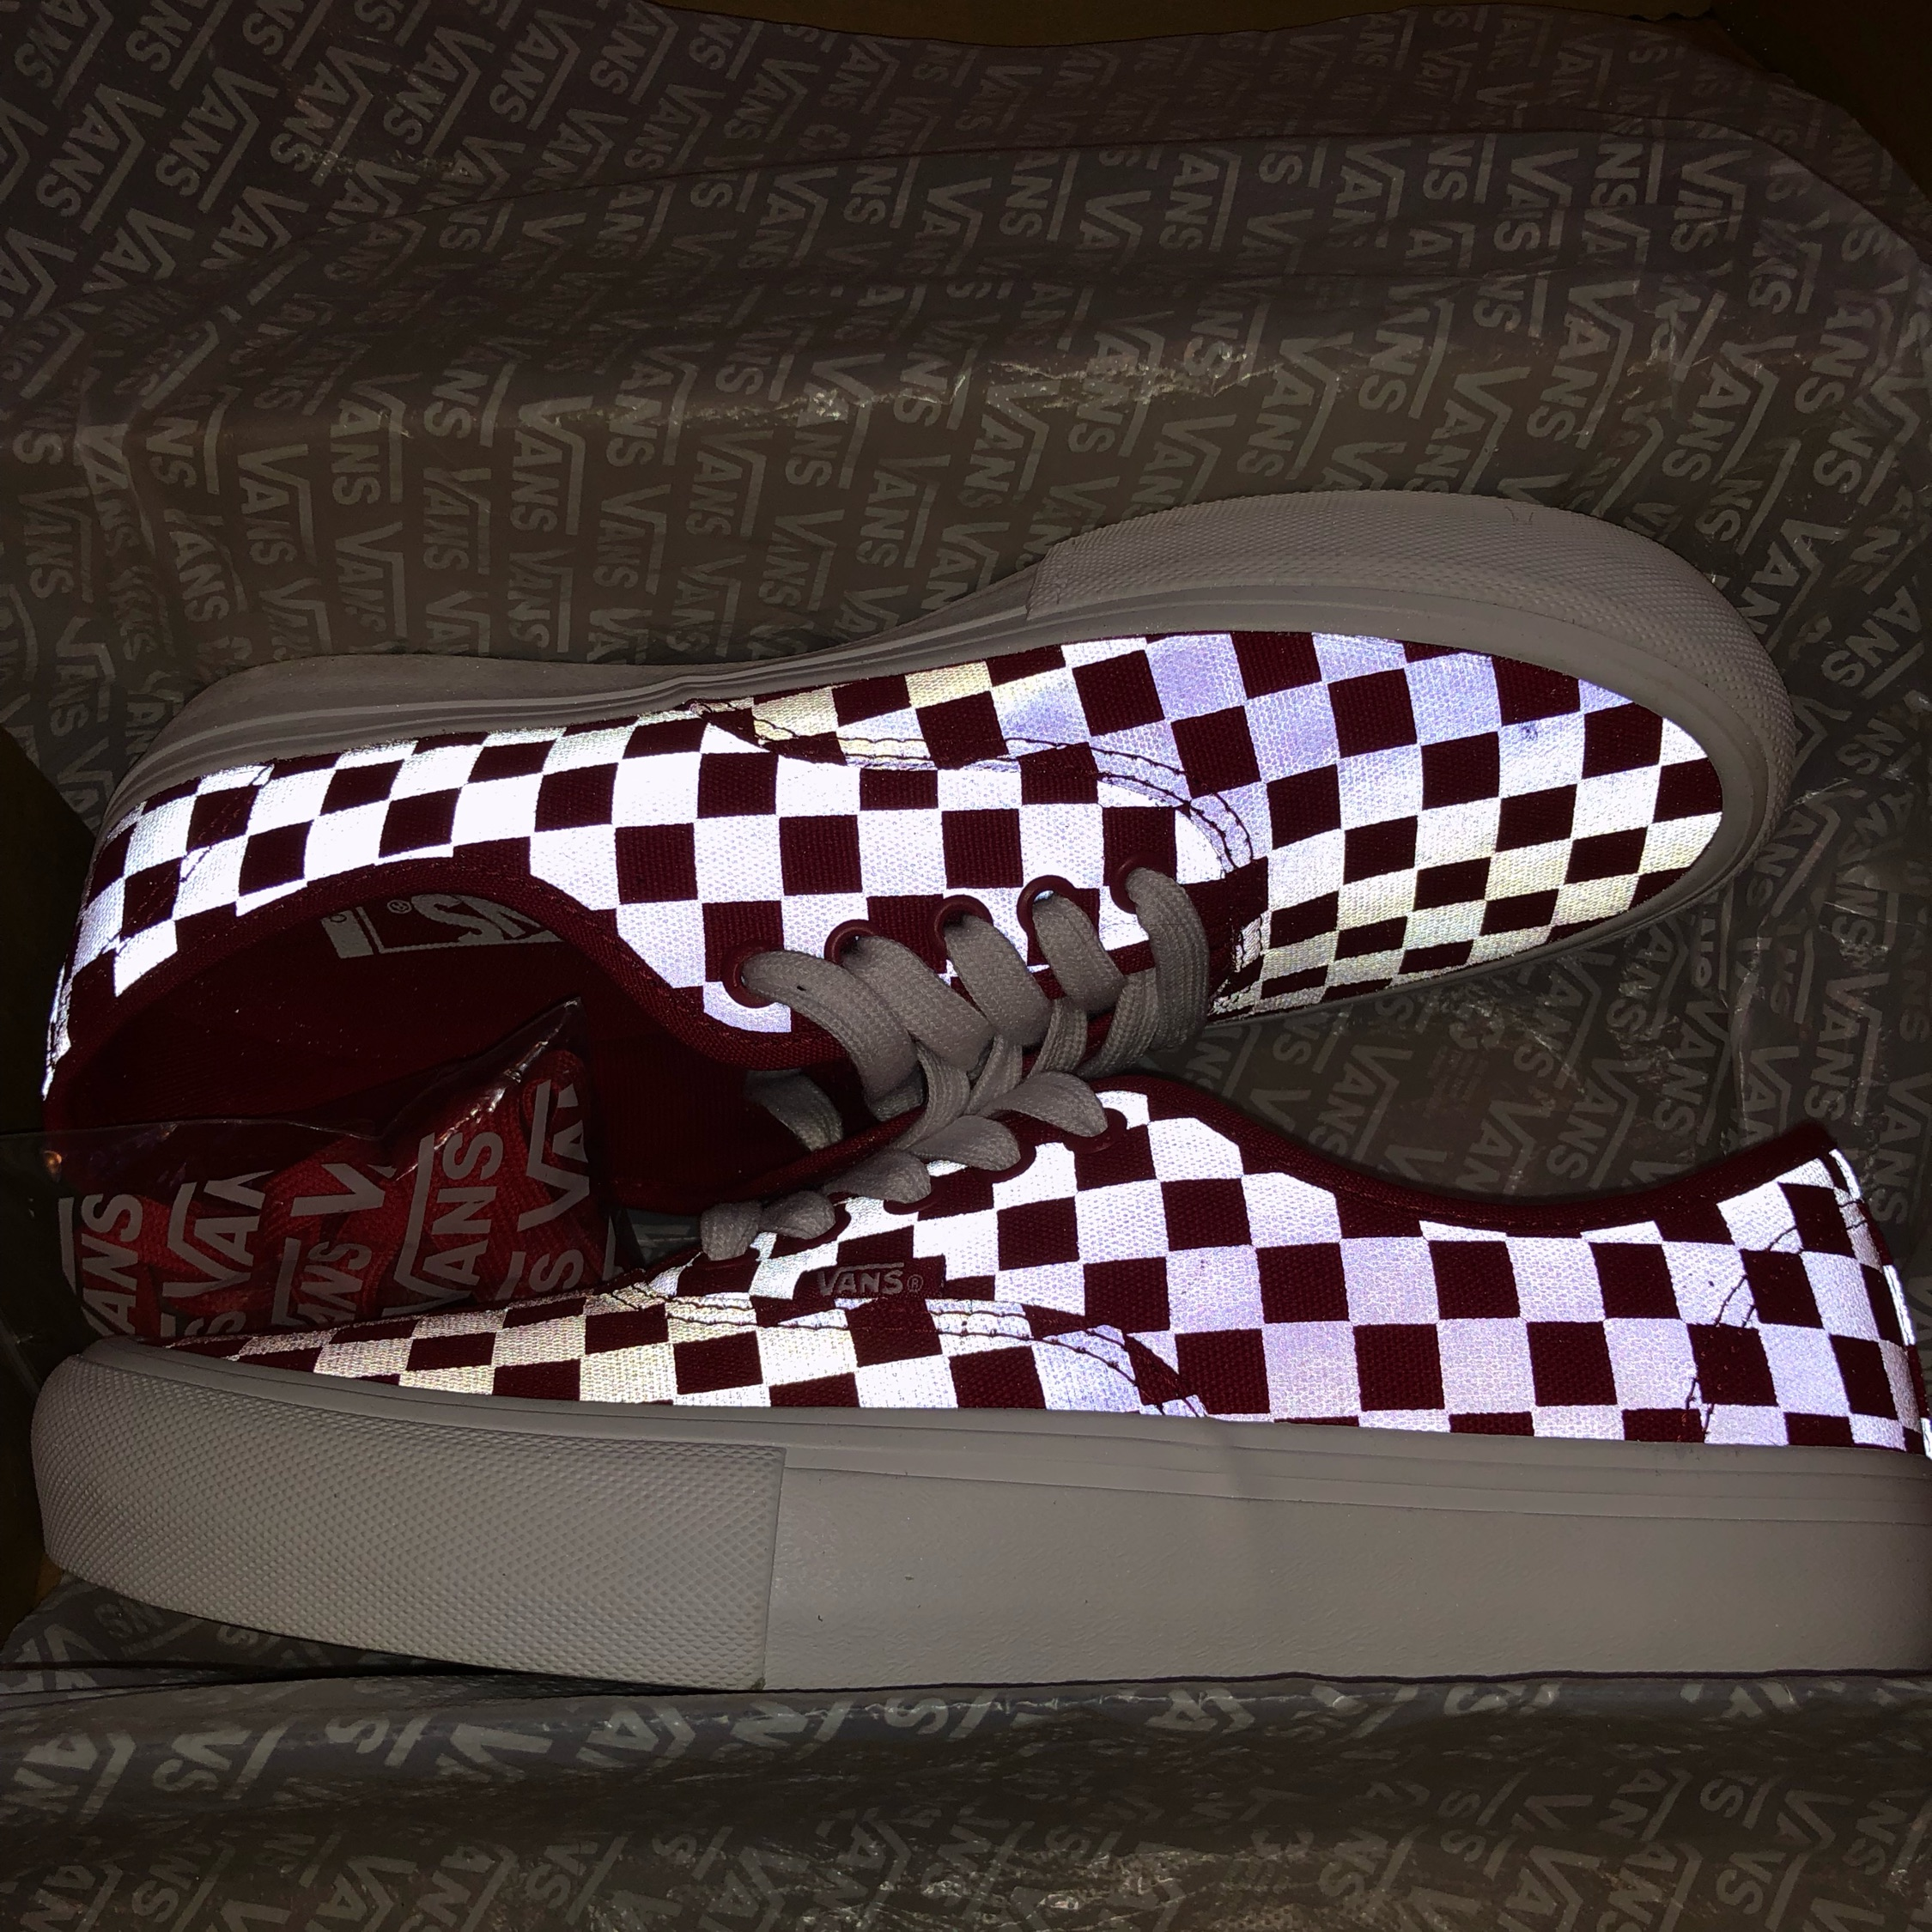 Red Checkered Reflective Ultracush Vans